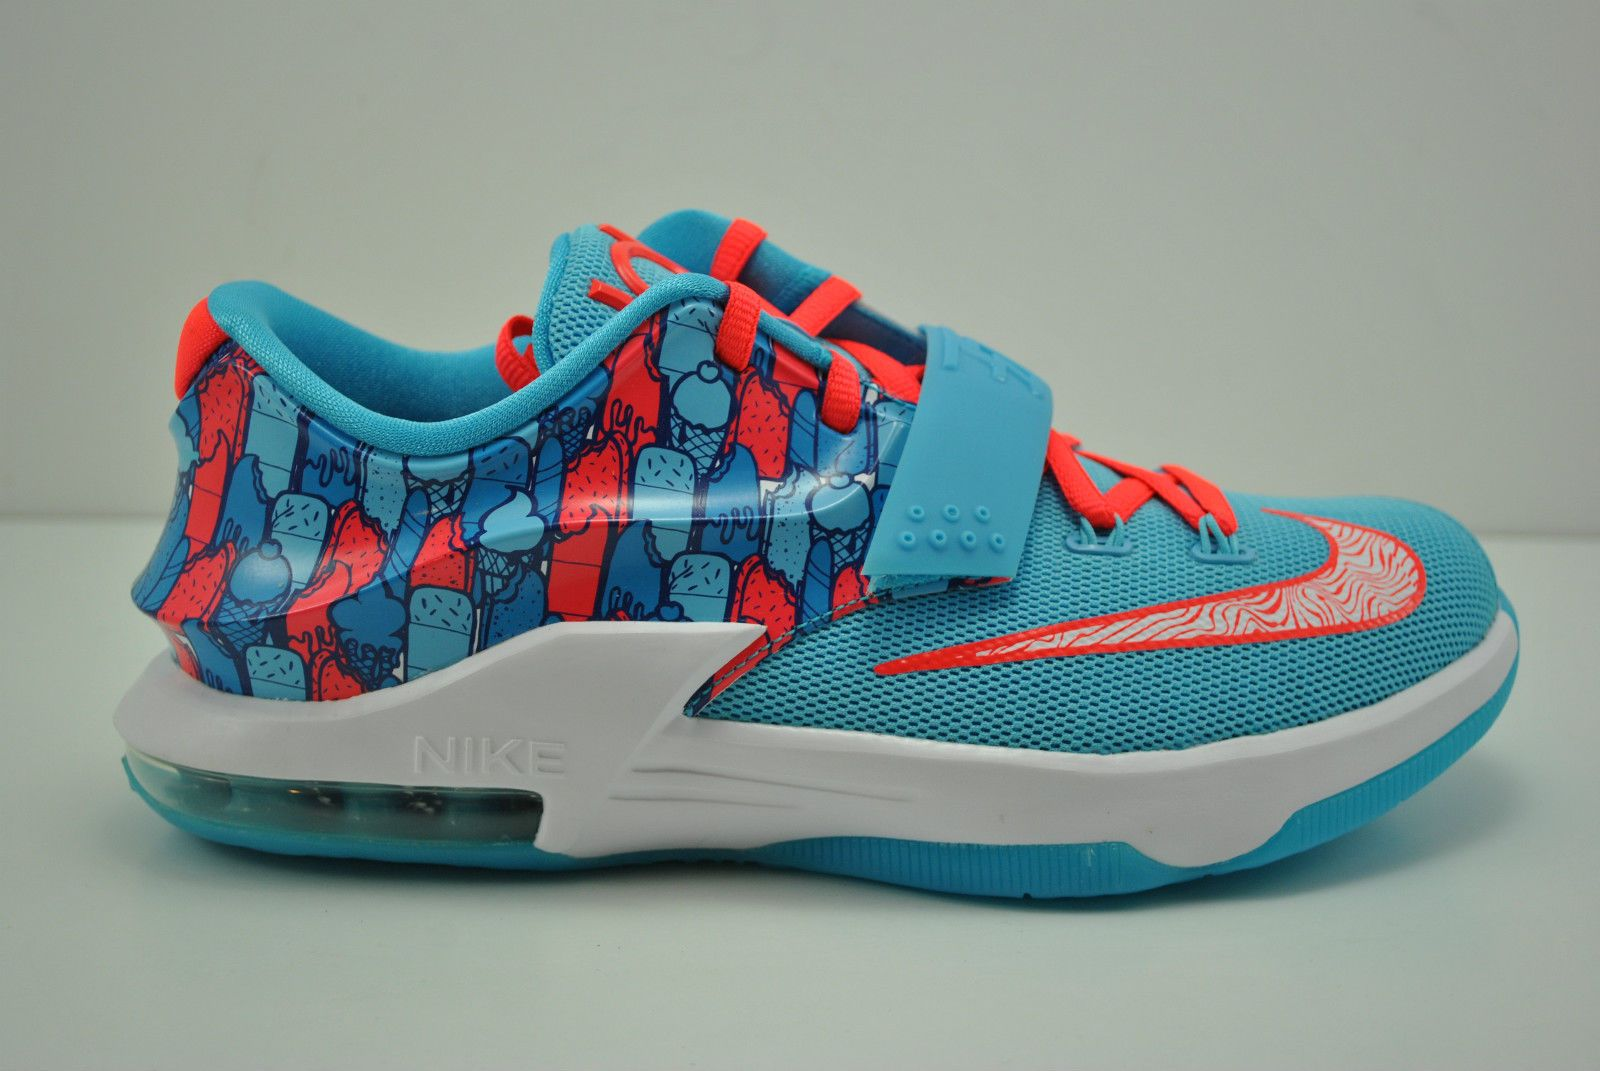 23feab1c8d0a Nike KD VII 7 GS Basketball Shoes Size 6Y Frozen Ice Cream Durant 669942  401